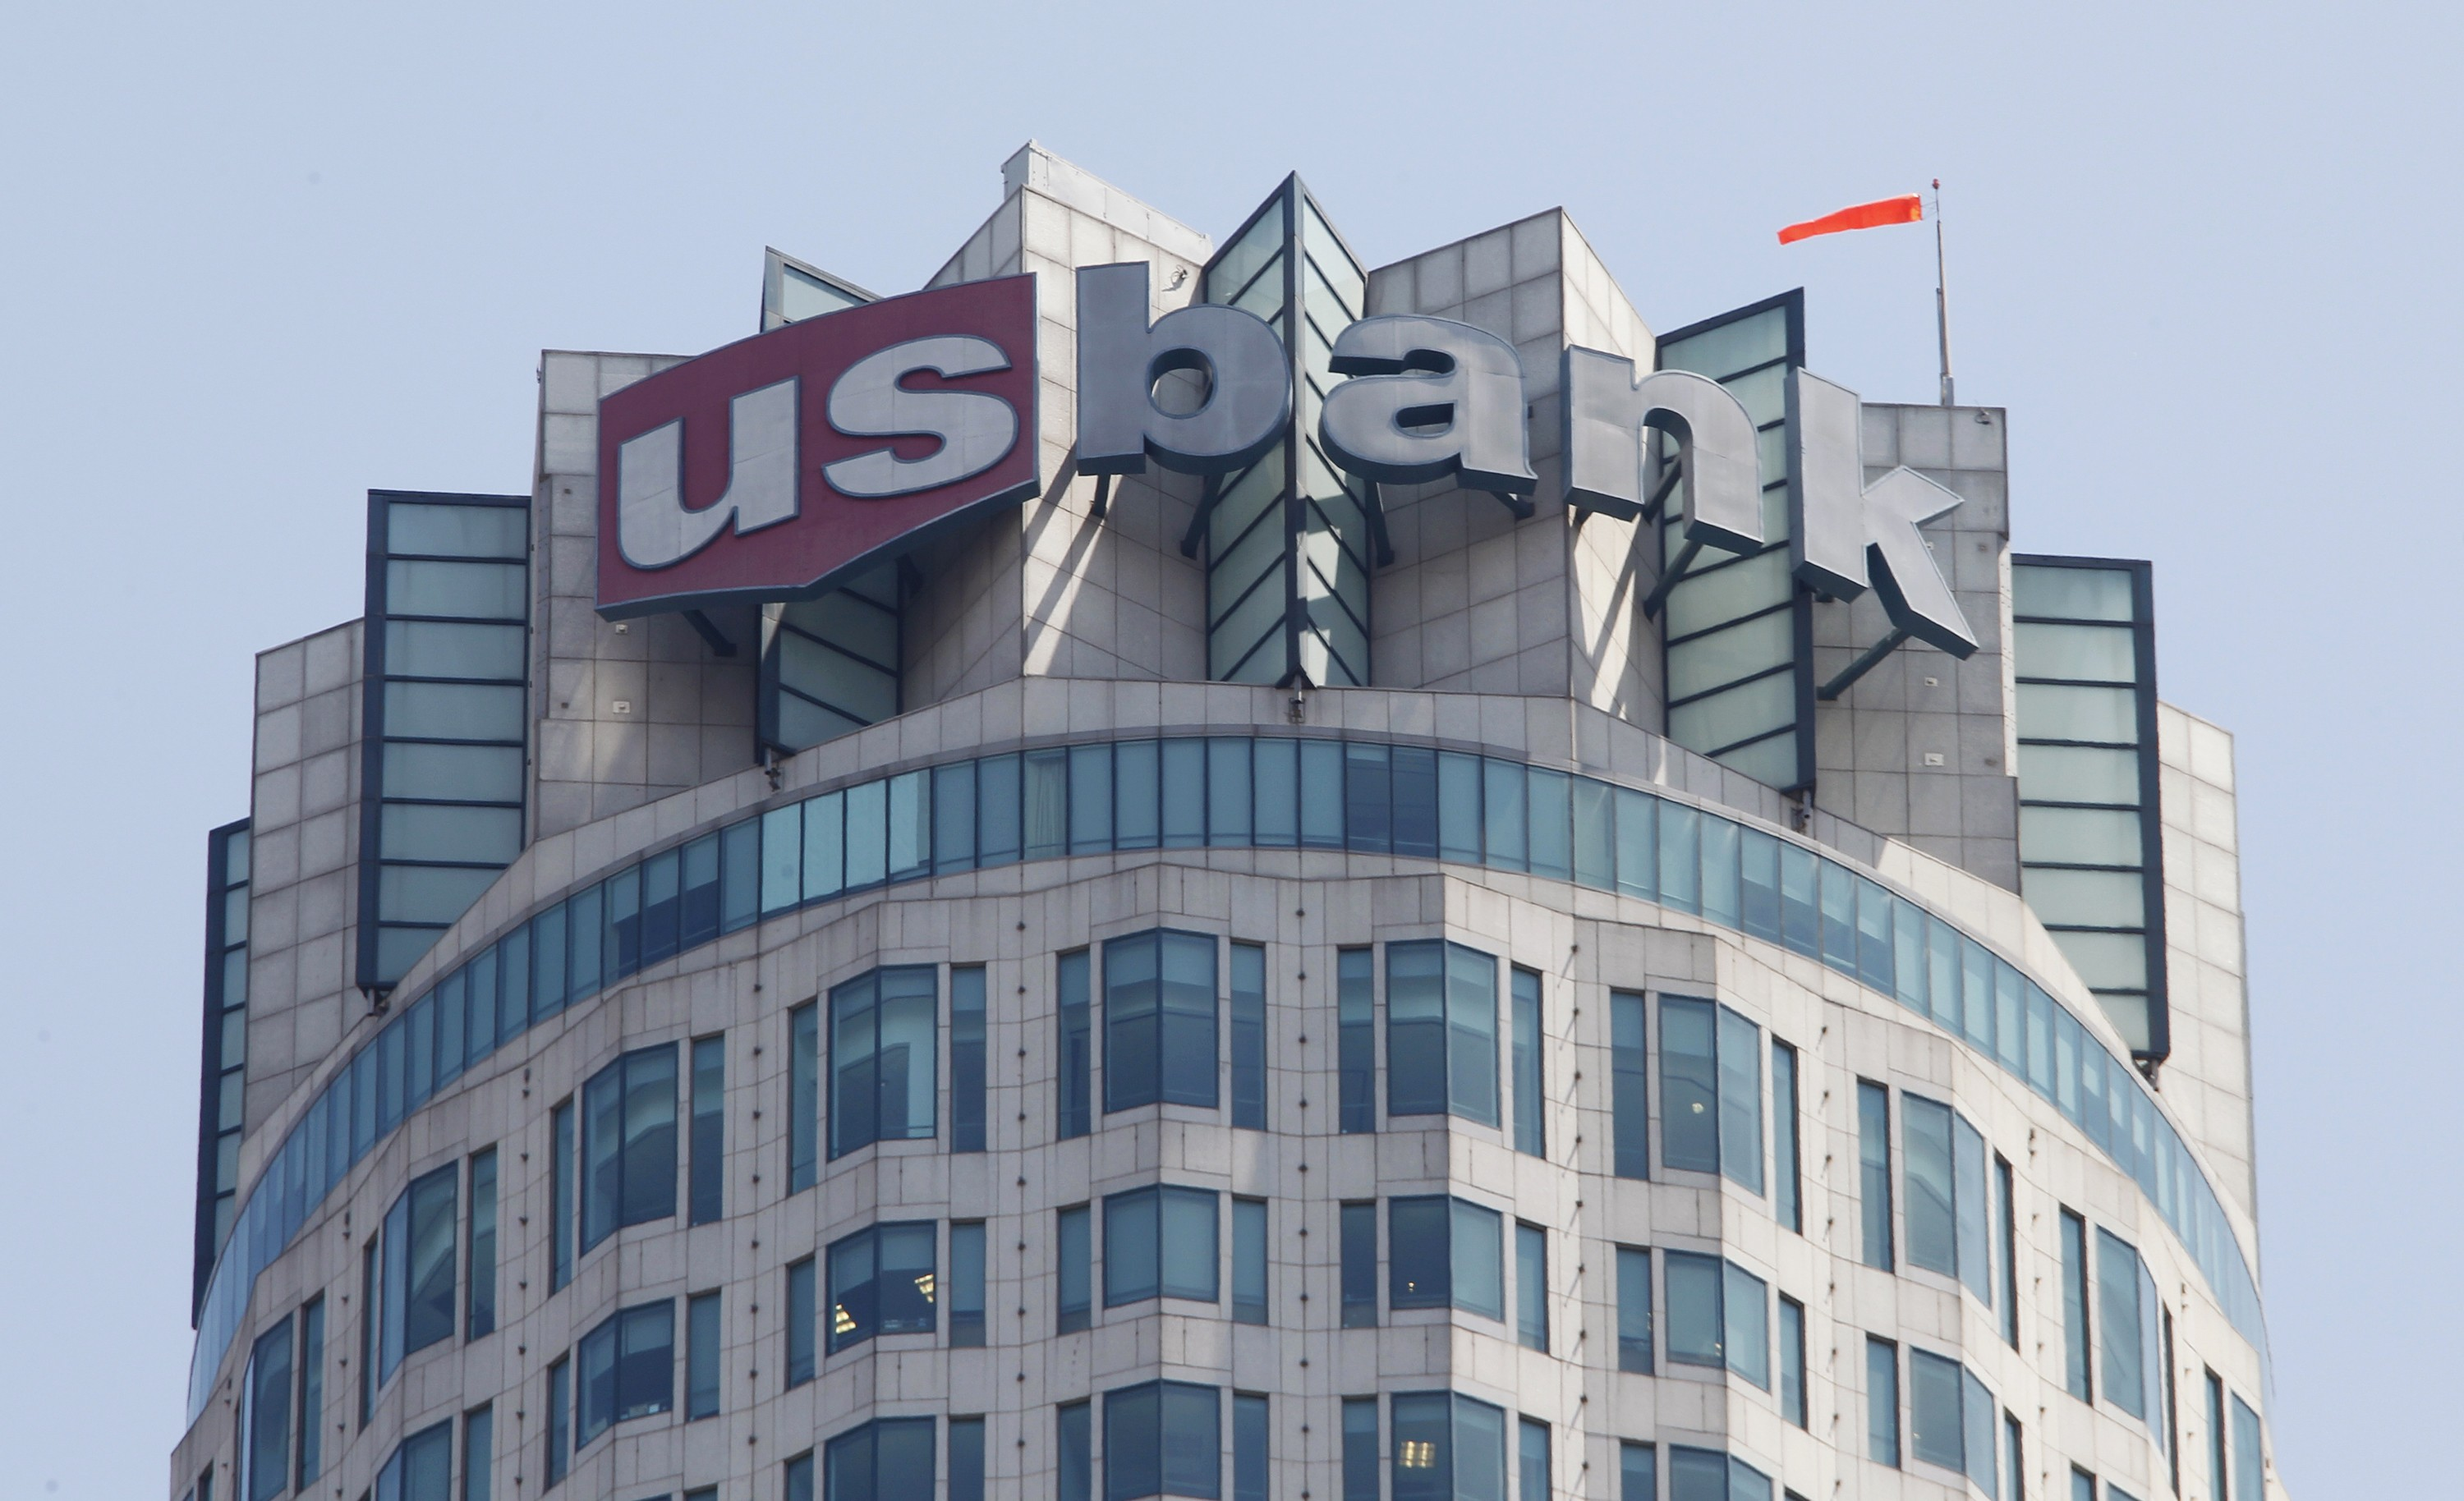 The Logo Of Us Bank Is Seen Atop The Us Bank Tower In